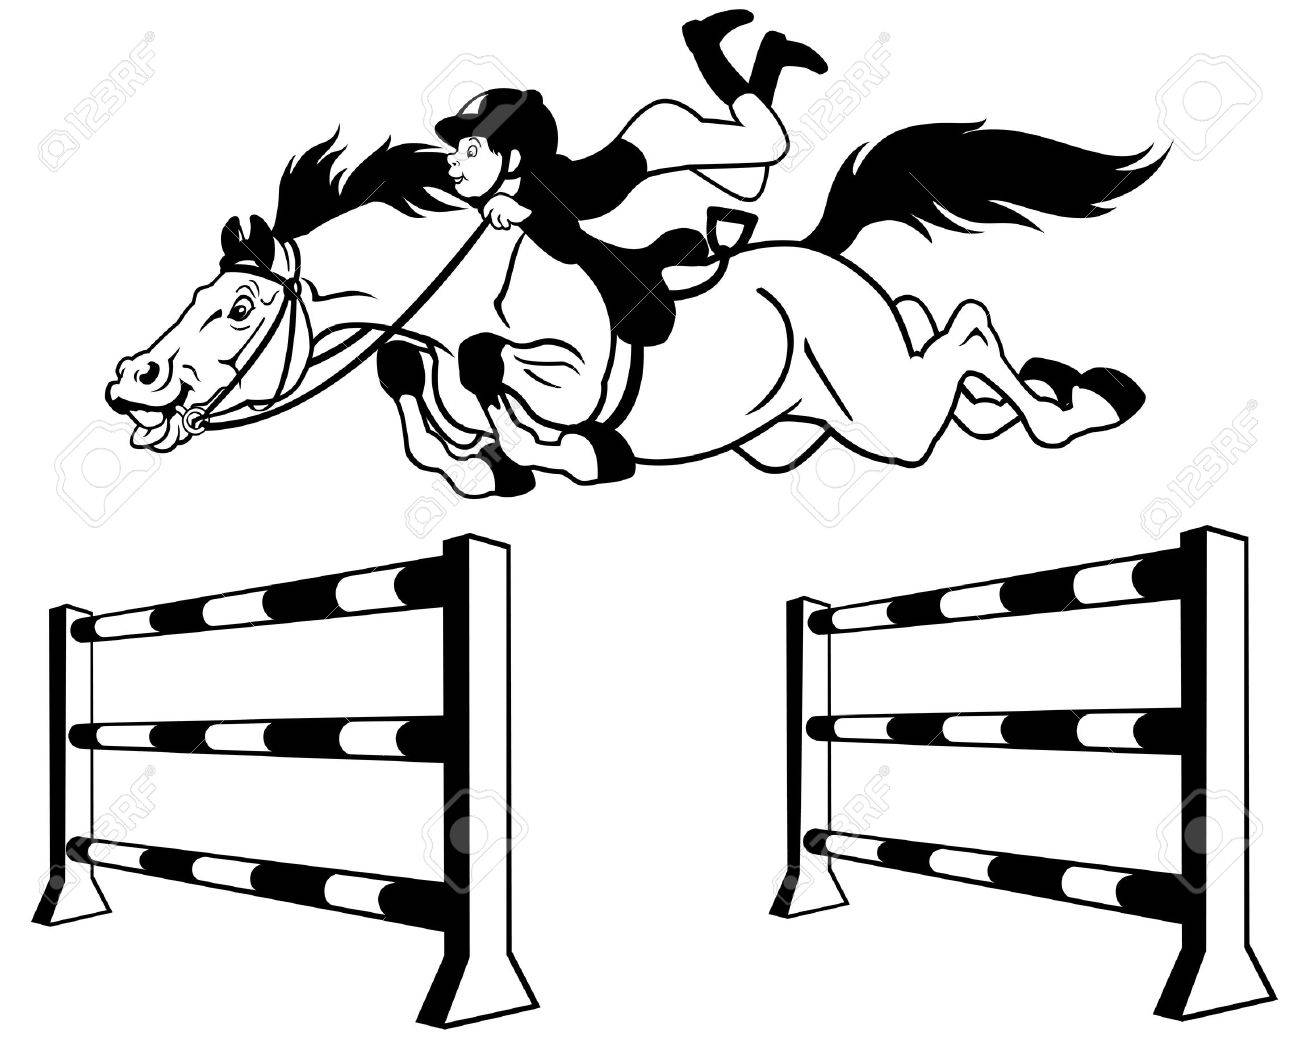 1300x1040 Kid With Horse Jumping A Hurdle,equestrian Sport,black And White